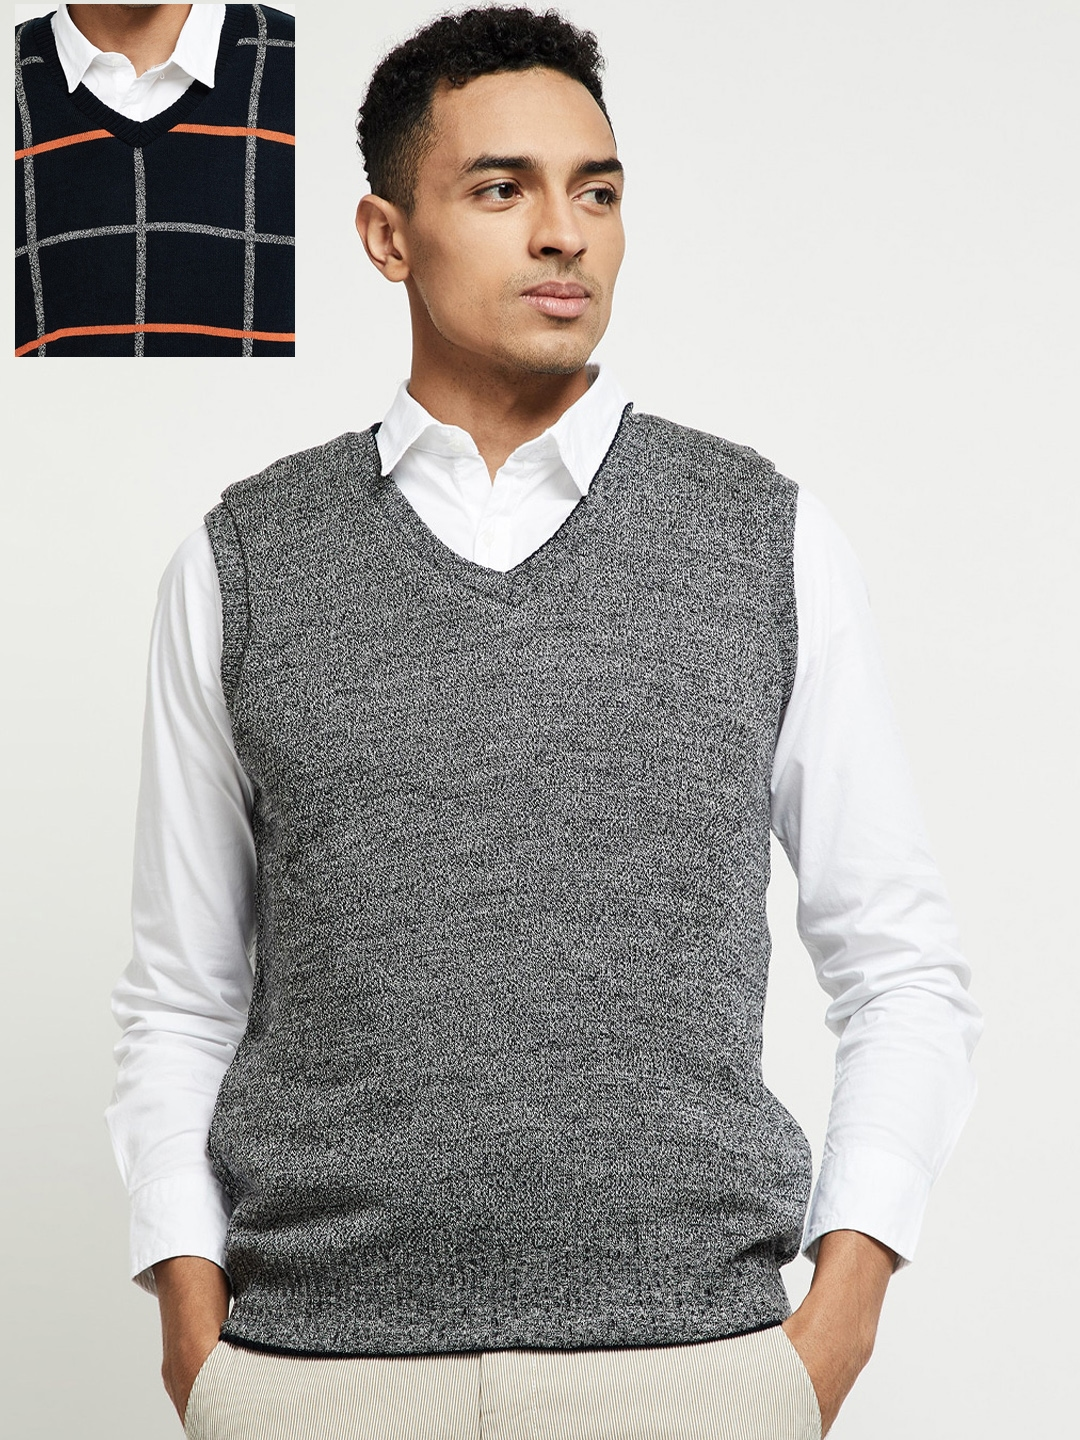 max Men Navy Blue   Grey Checked Reversible Sweater Vest